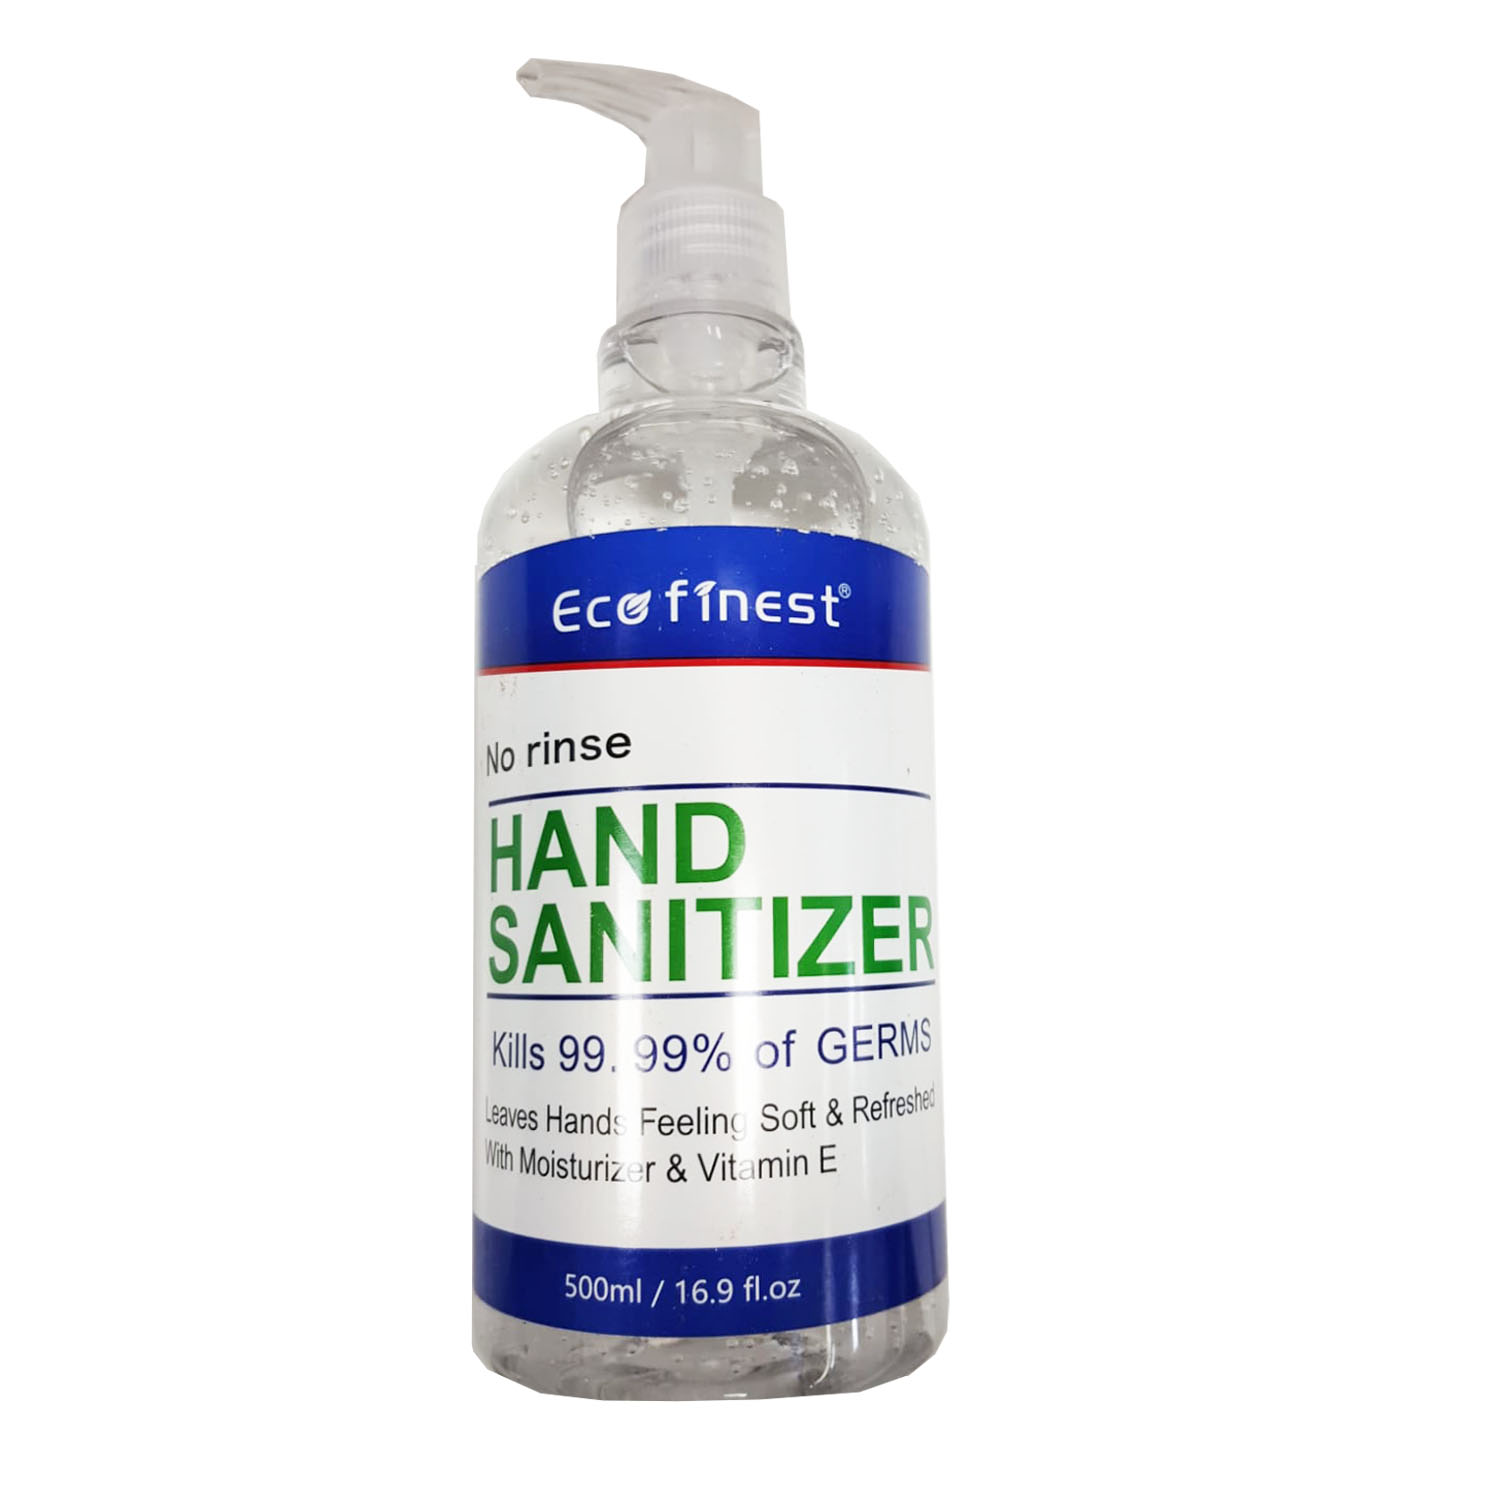 NO RINSE HAND SANITIZER